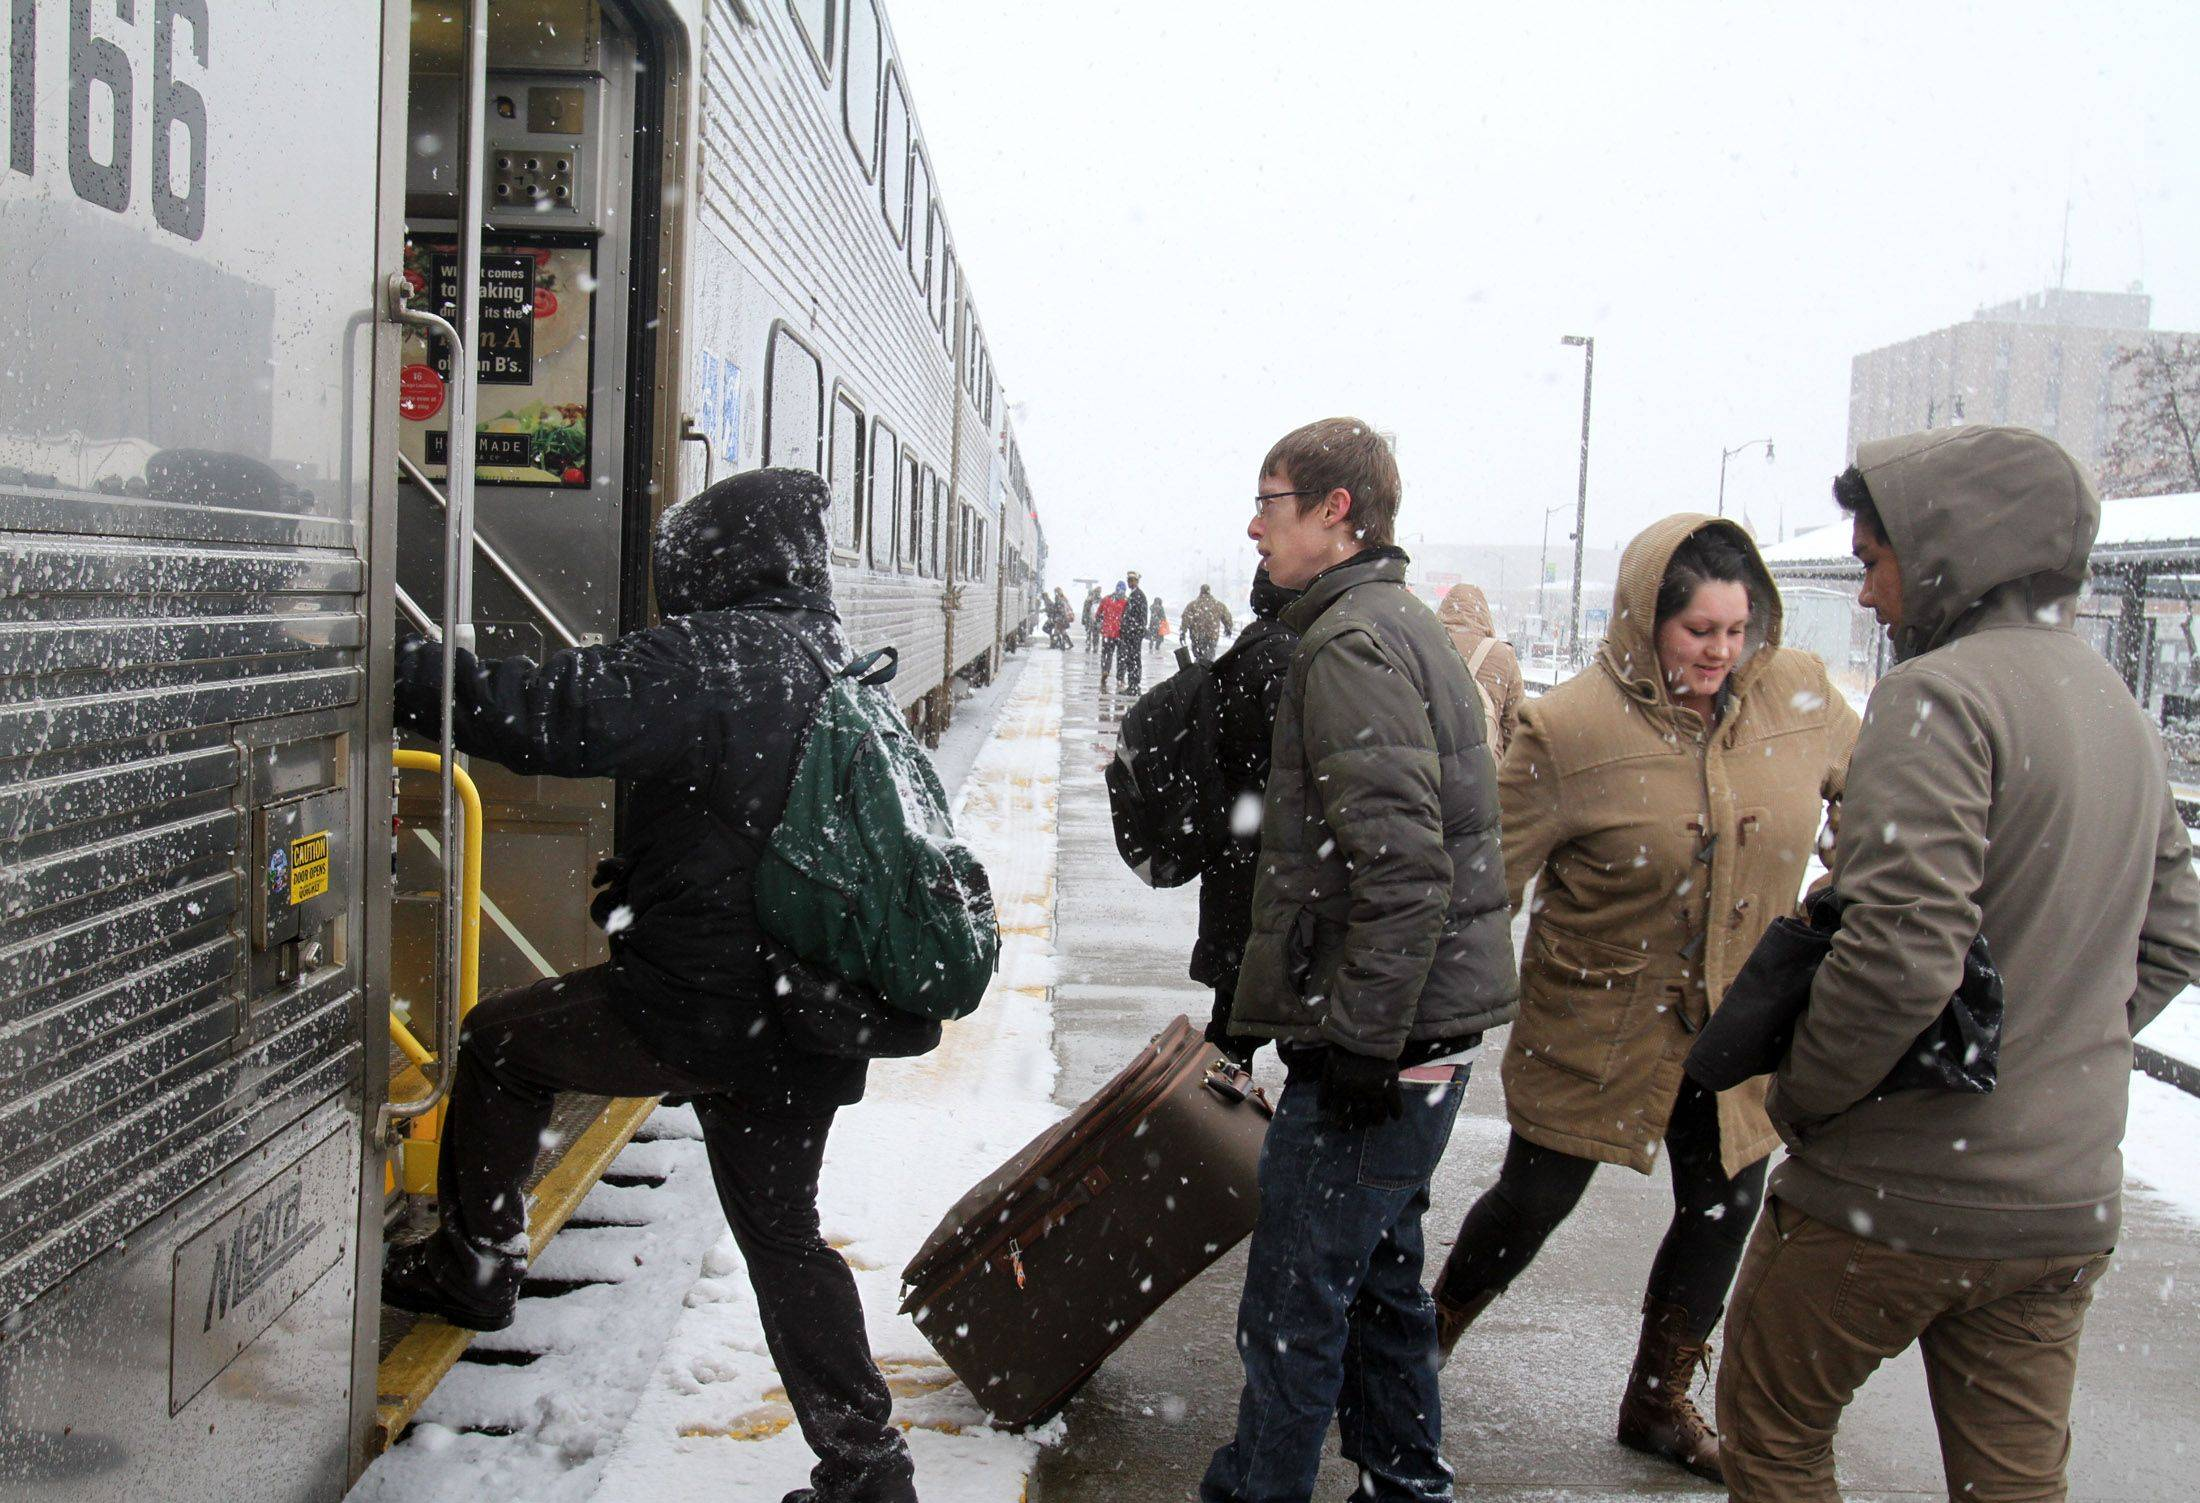 Commuters, including Adrian Jacobe of Lakemoor, far right, board the train at the Metra Station in Des Plaines.